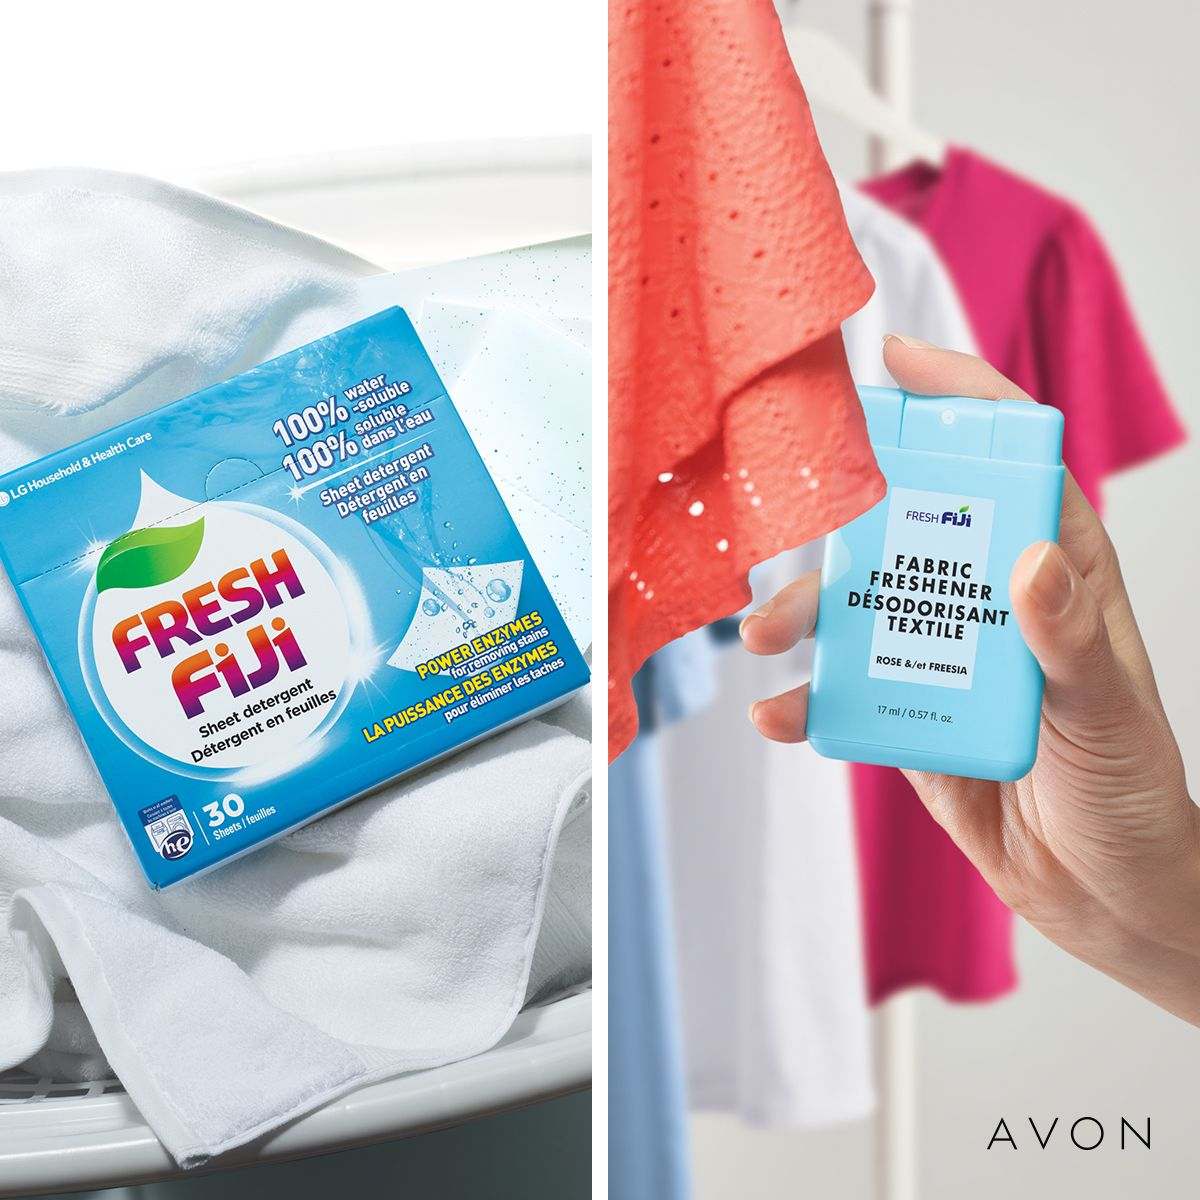 Check out our new Laundry Detergent in a single sheet, and our new fresh…